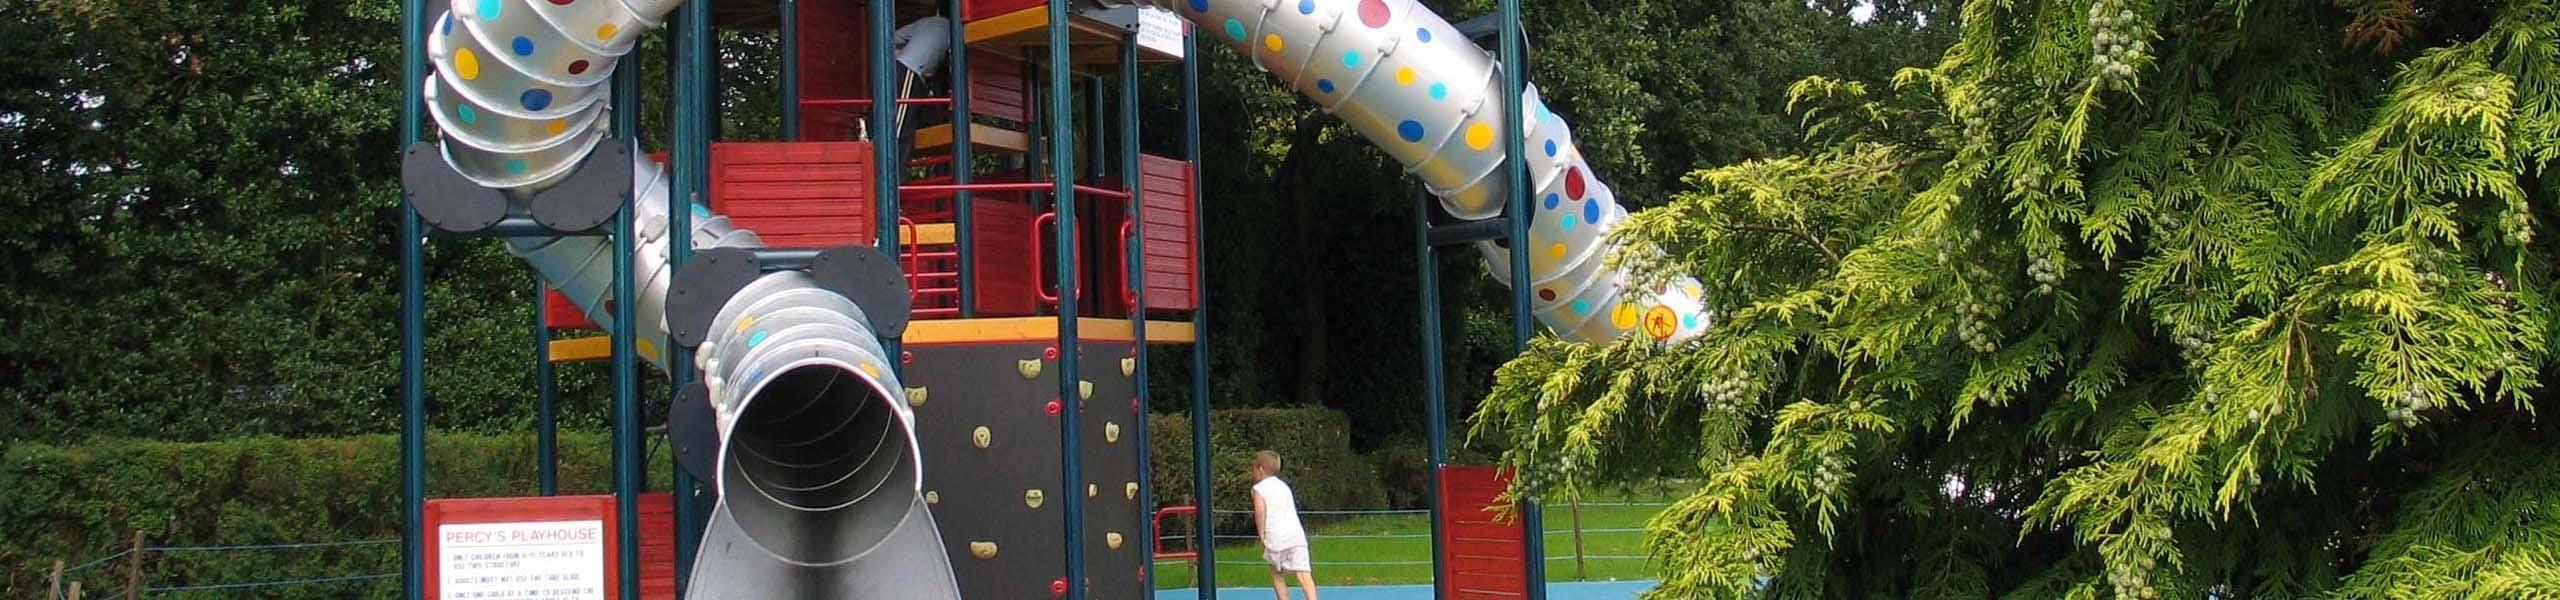 Percy's Play Park and Playhouse | Paultons Park